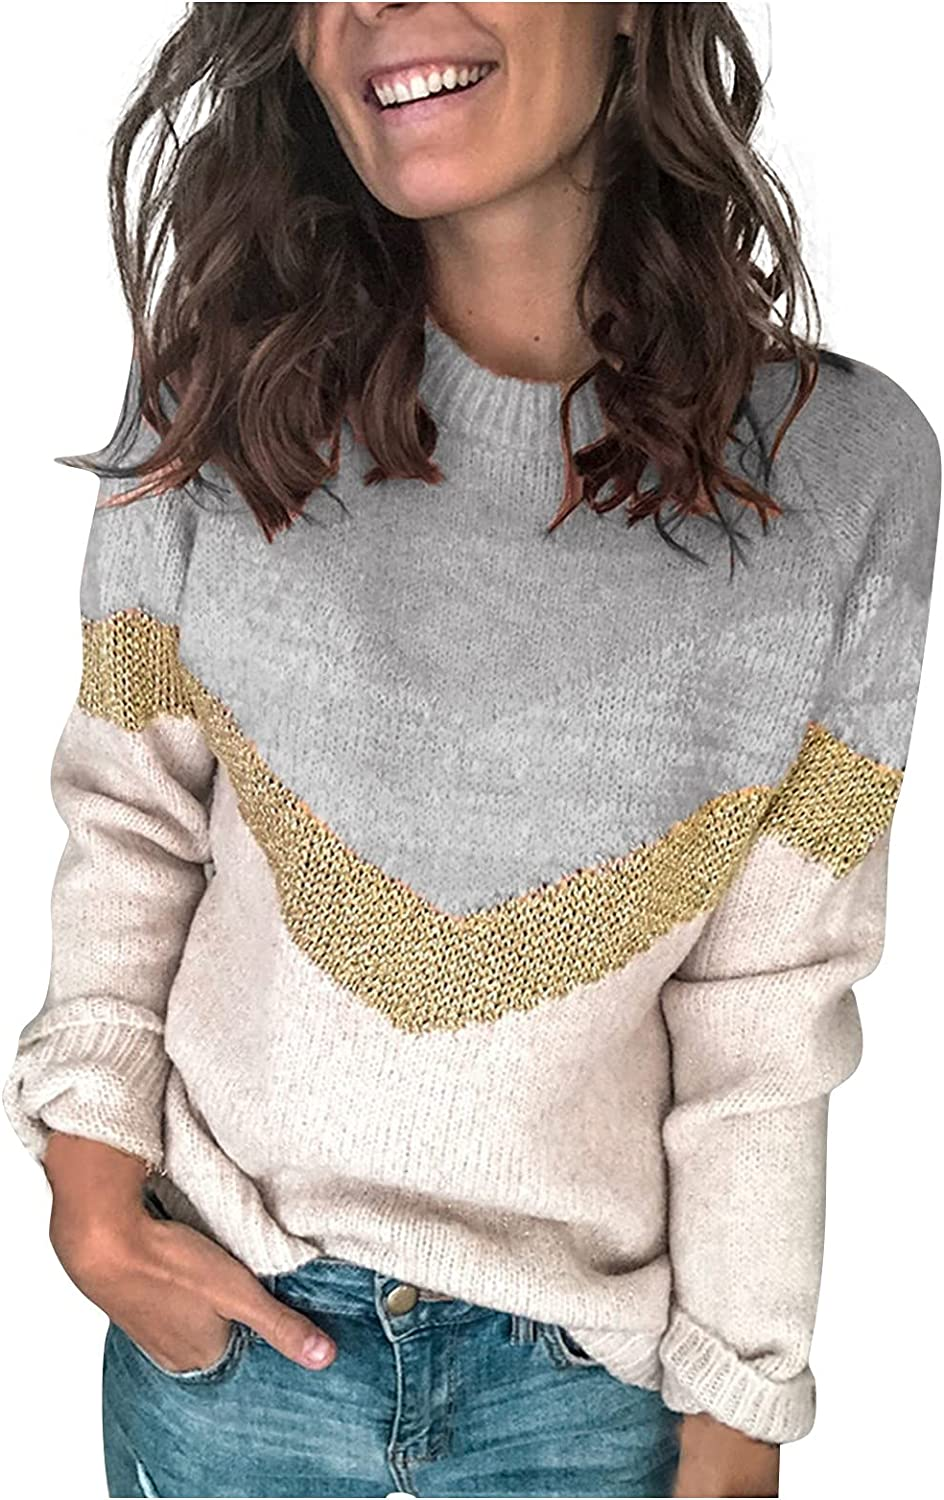 UOFOCO Pullover Sweaters for Women Long Sleeve Tops Knit Sweater Loose Fit Striped Crew Neck Shirts